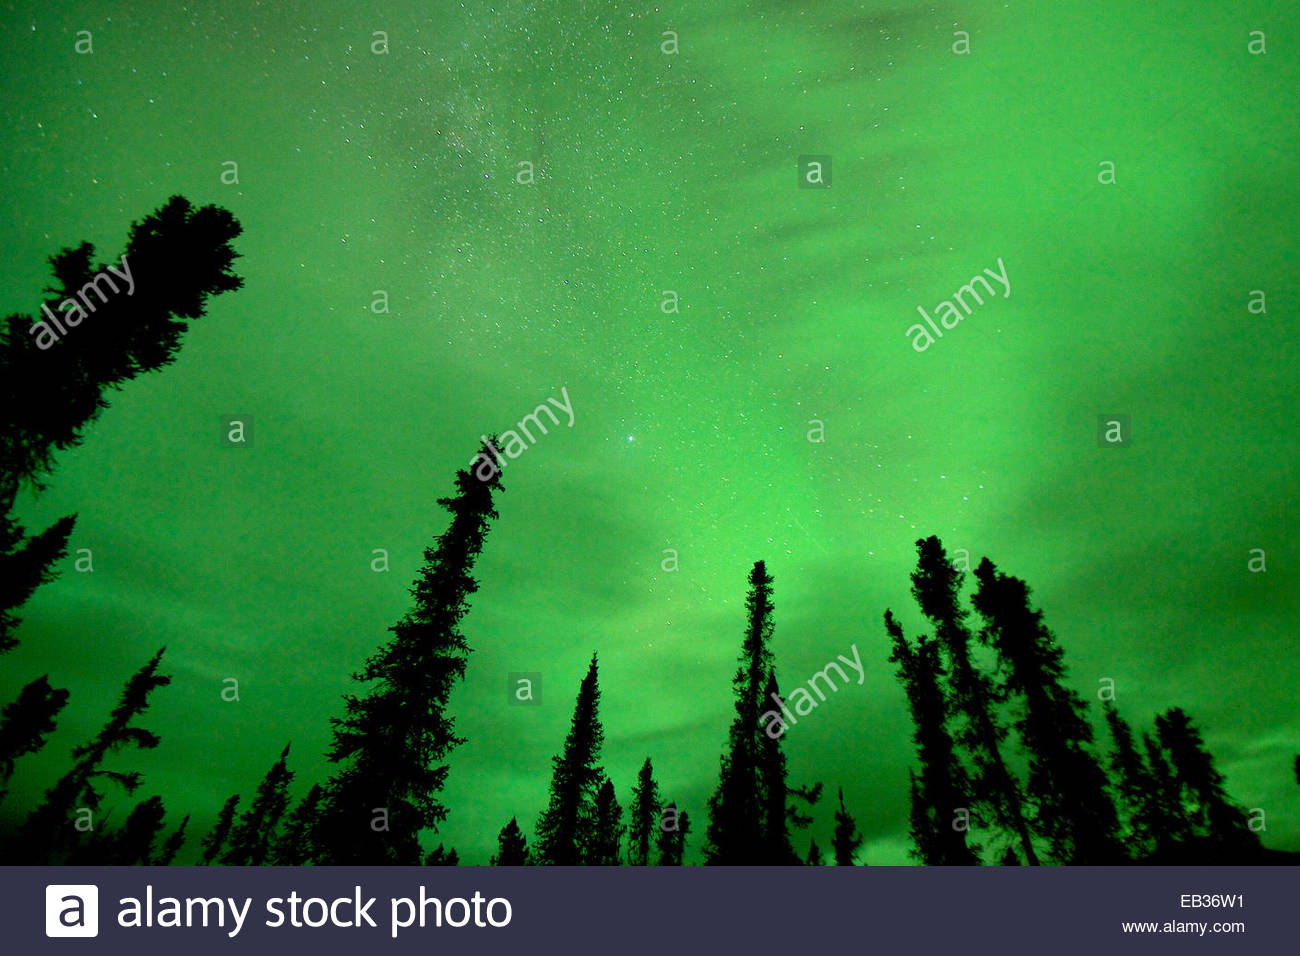 The clouds turns green as the lights happen above them. - Stock Image